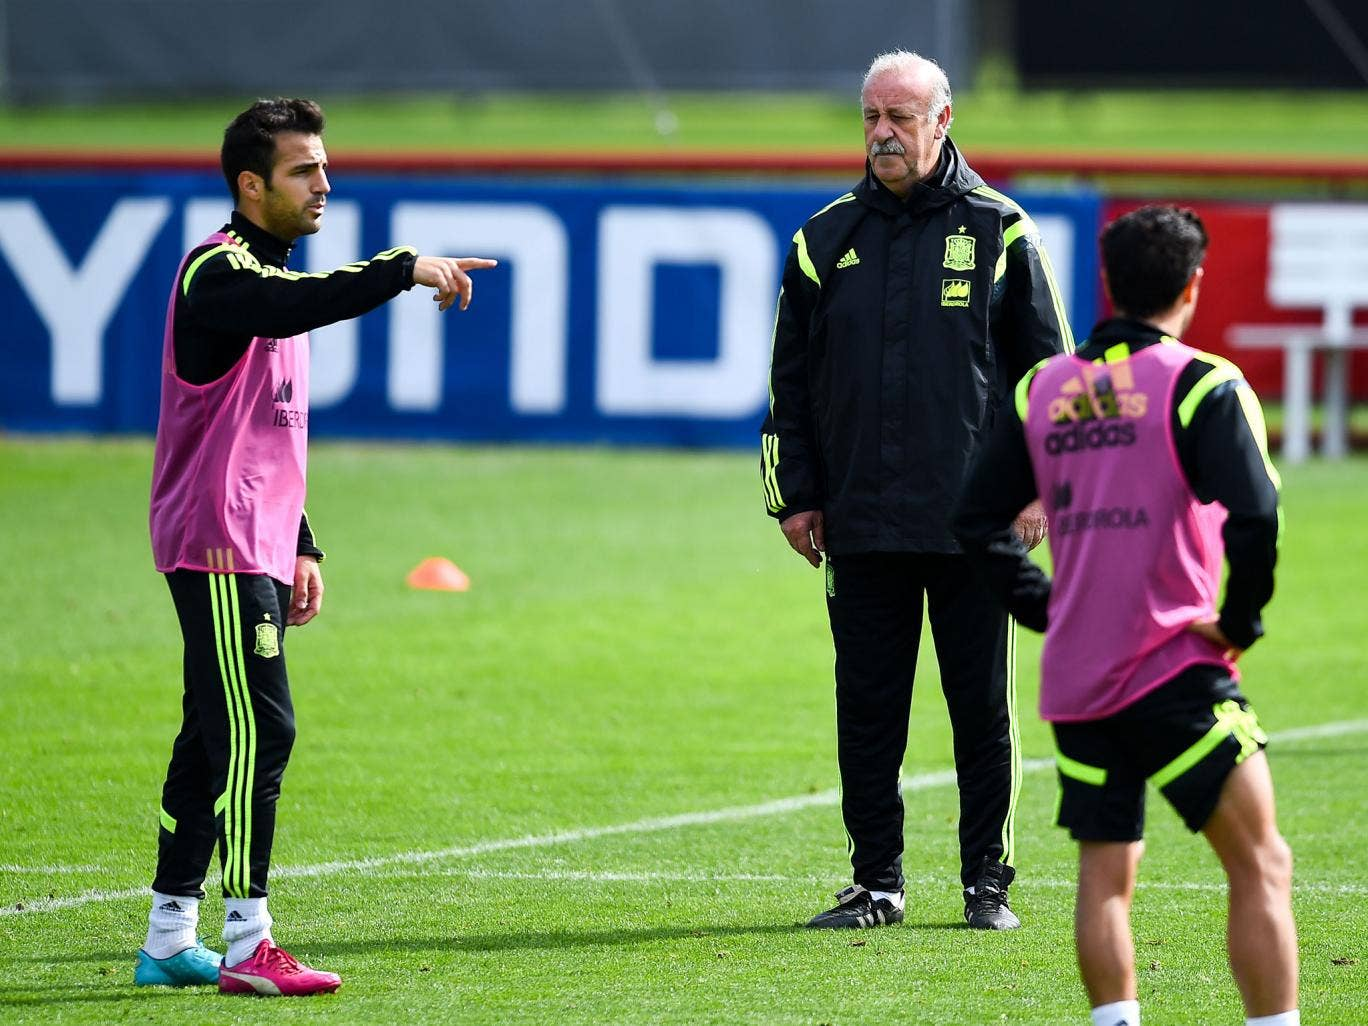 Cesc Fabregas (left) and Vicente del Bosque speak during Spain's training before he removed his bib